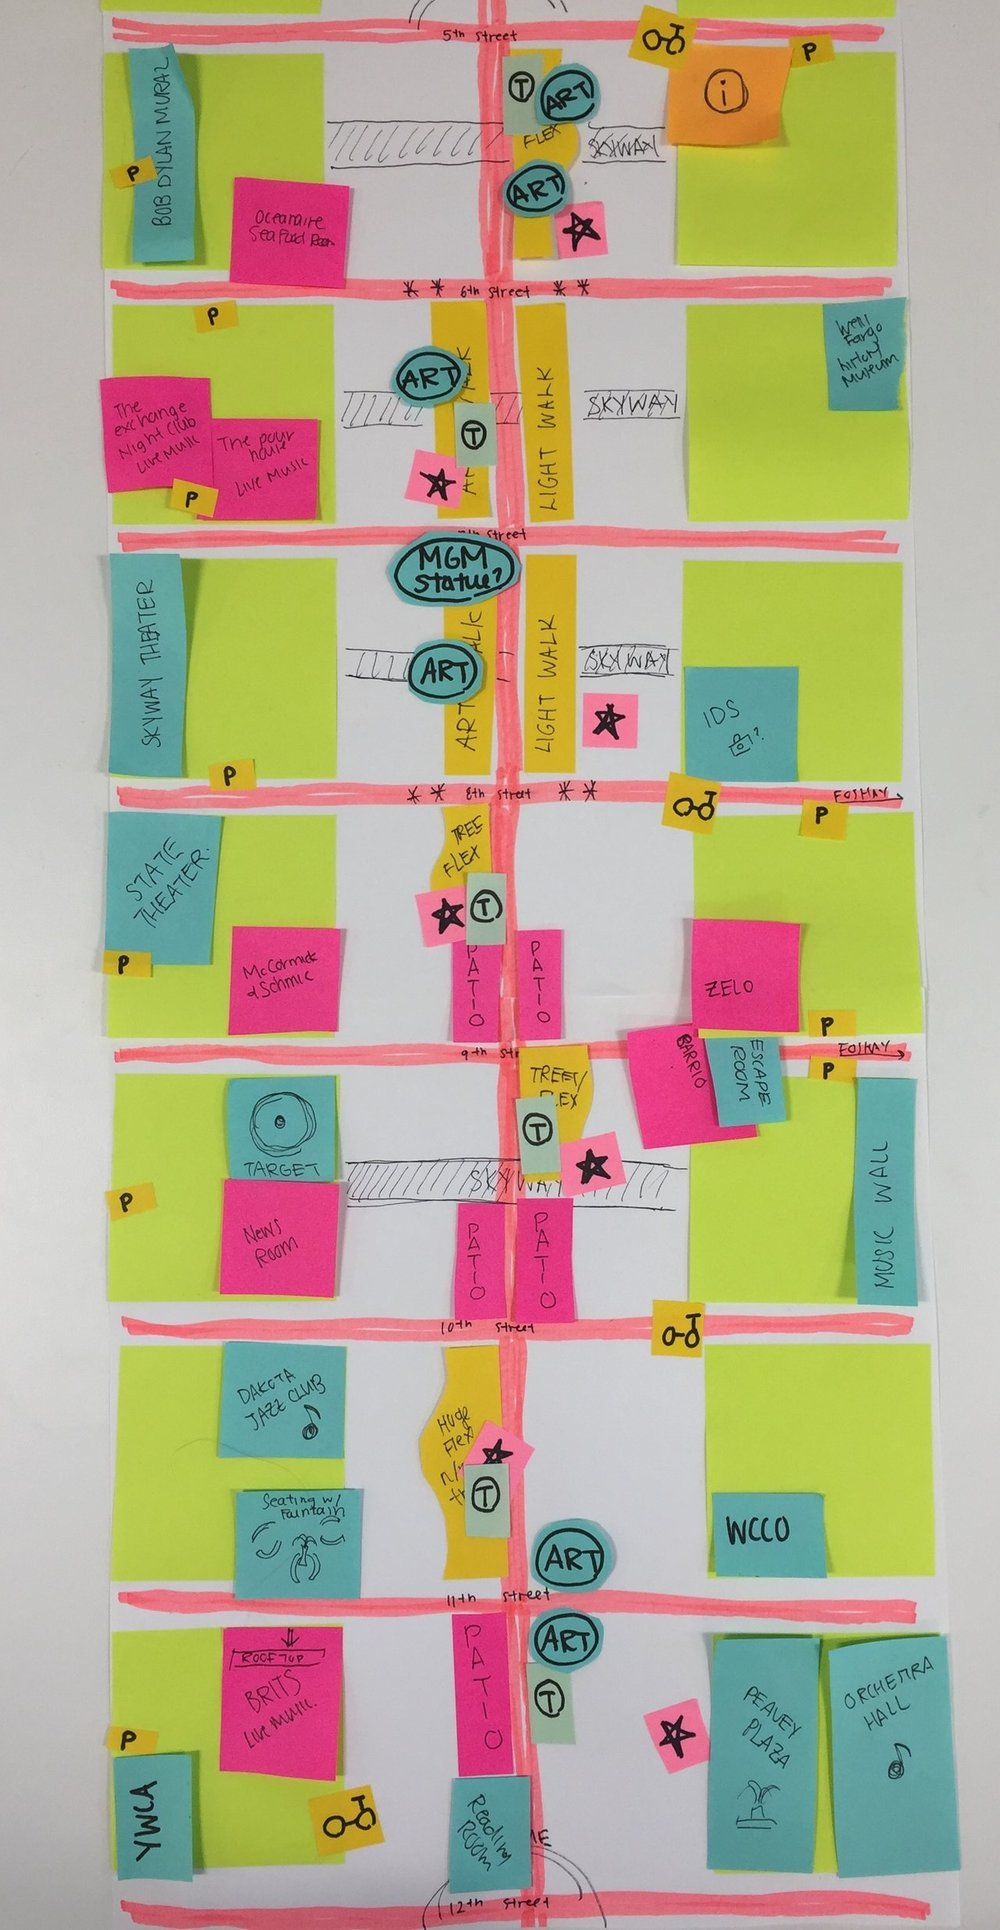 Copy of Map of all major touch points within Nicollet Mall.